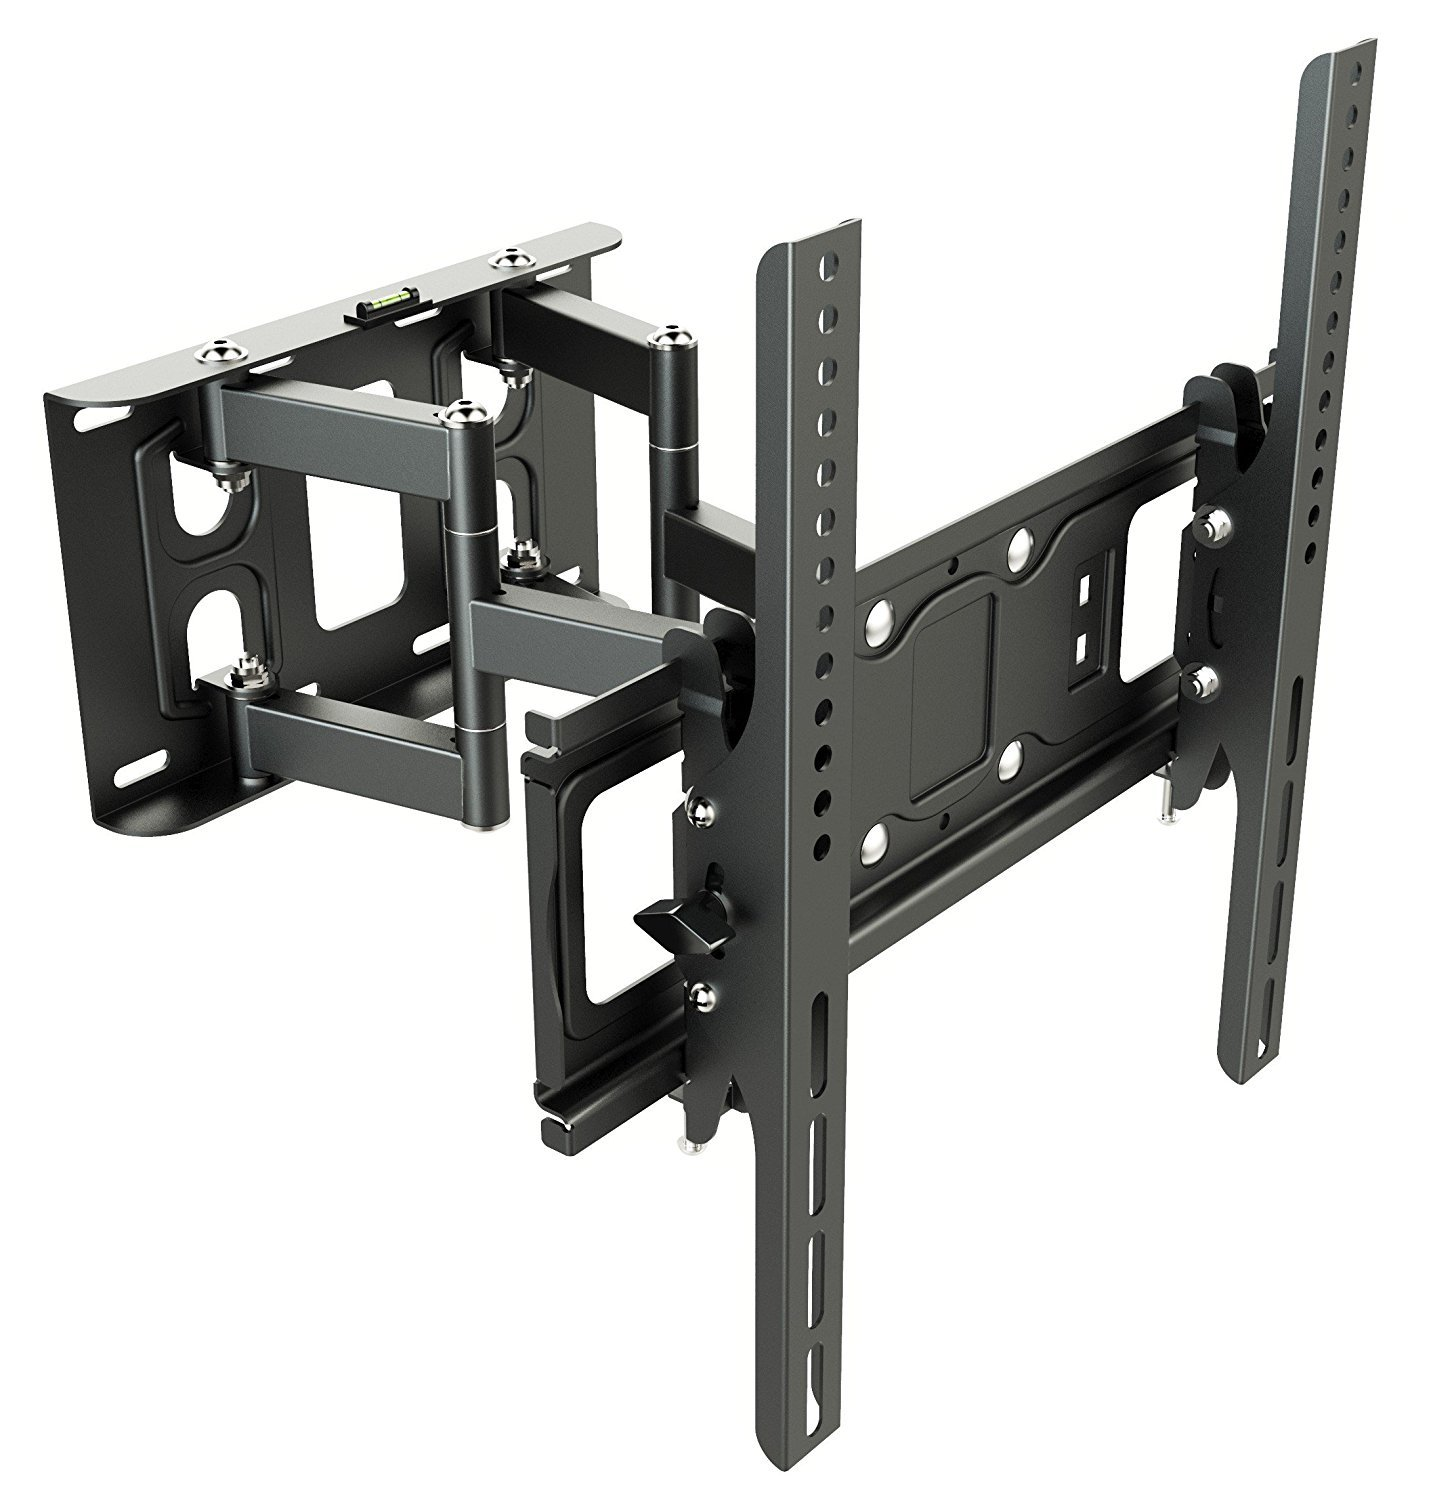 Support mural tv orientable ricoo - Support tv 55 orientable ...